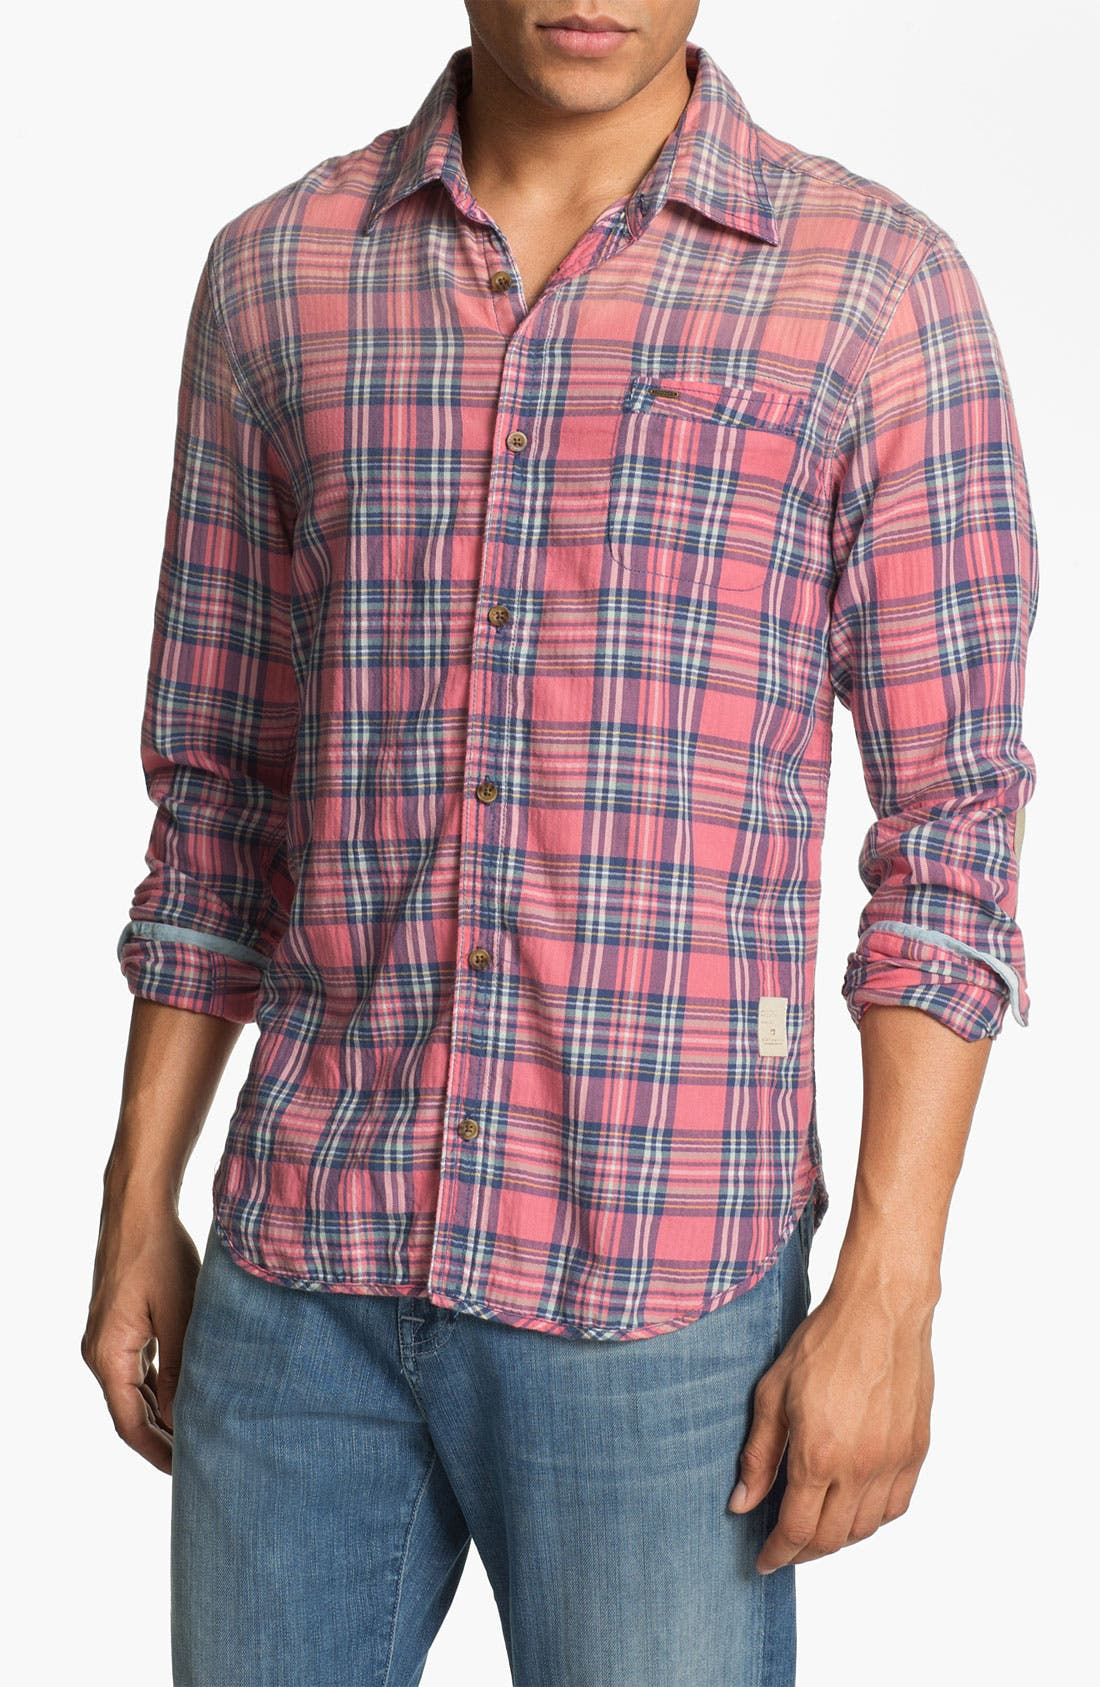 Main Image - Scotch & Soda Herringbone Plaid Shirt